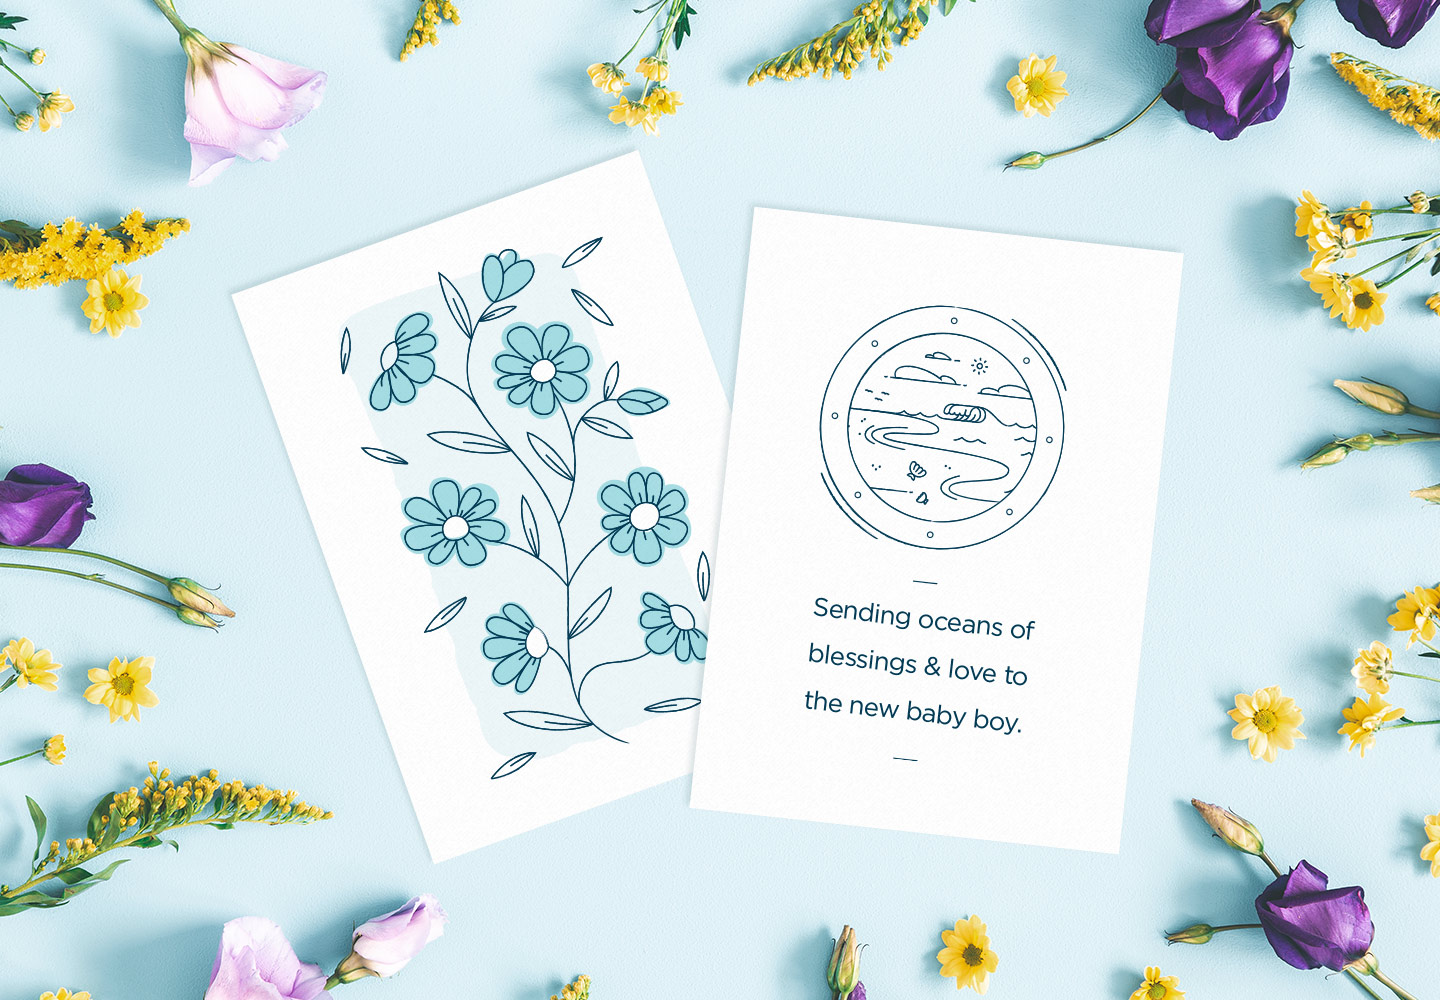 new baby boy cards on a blue background with flowers